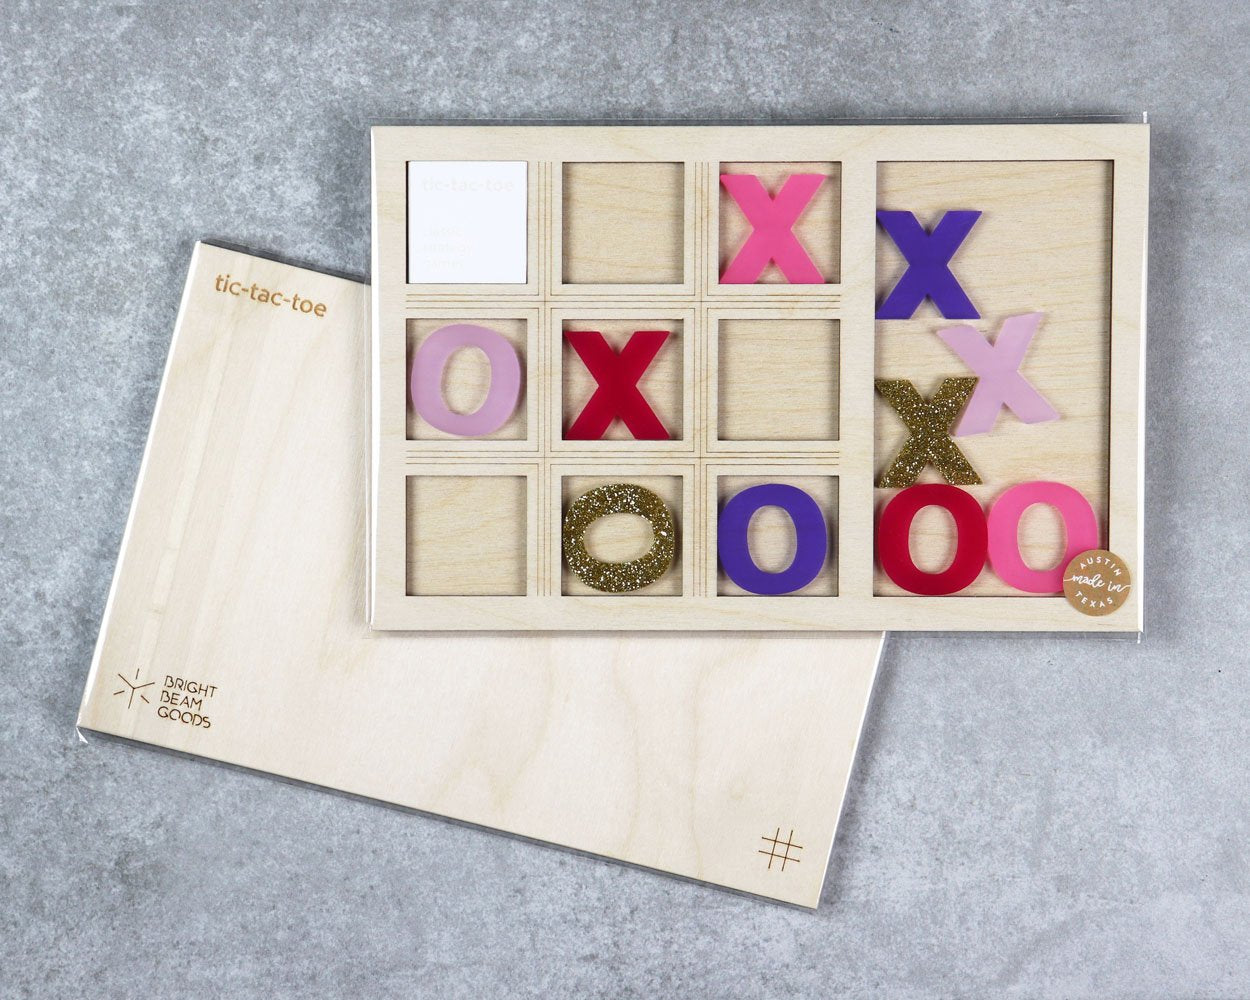 Carnival tic-tac-toe game in packaging